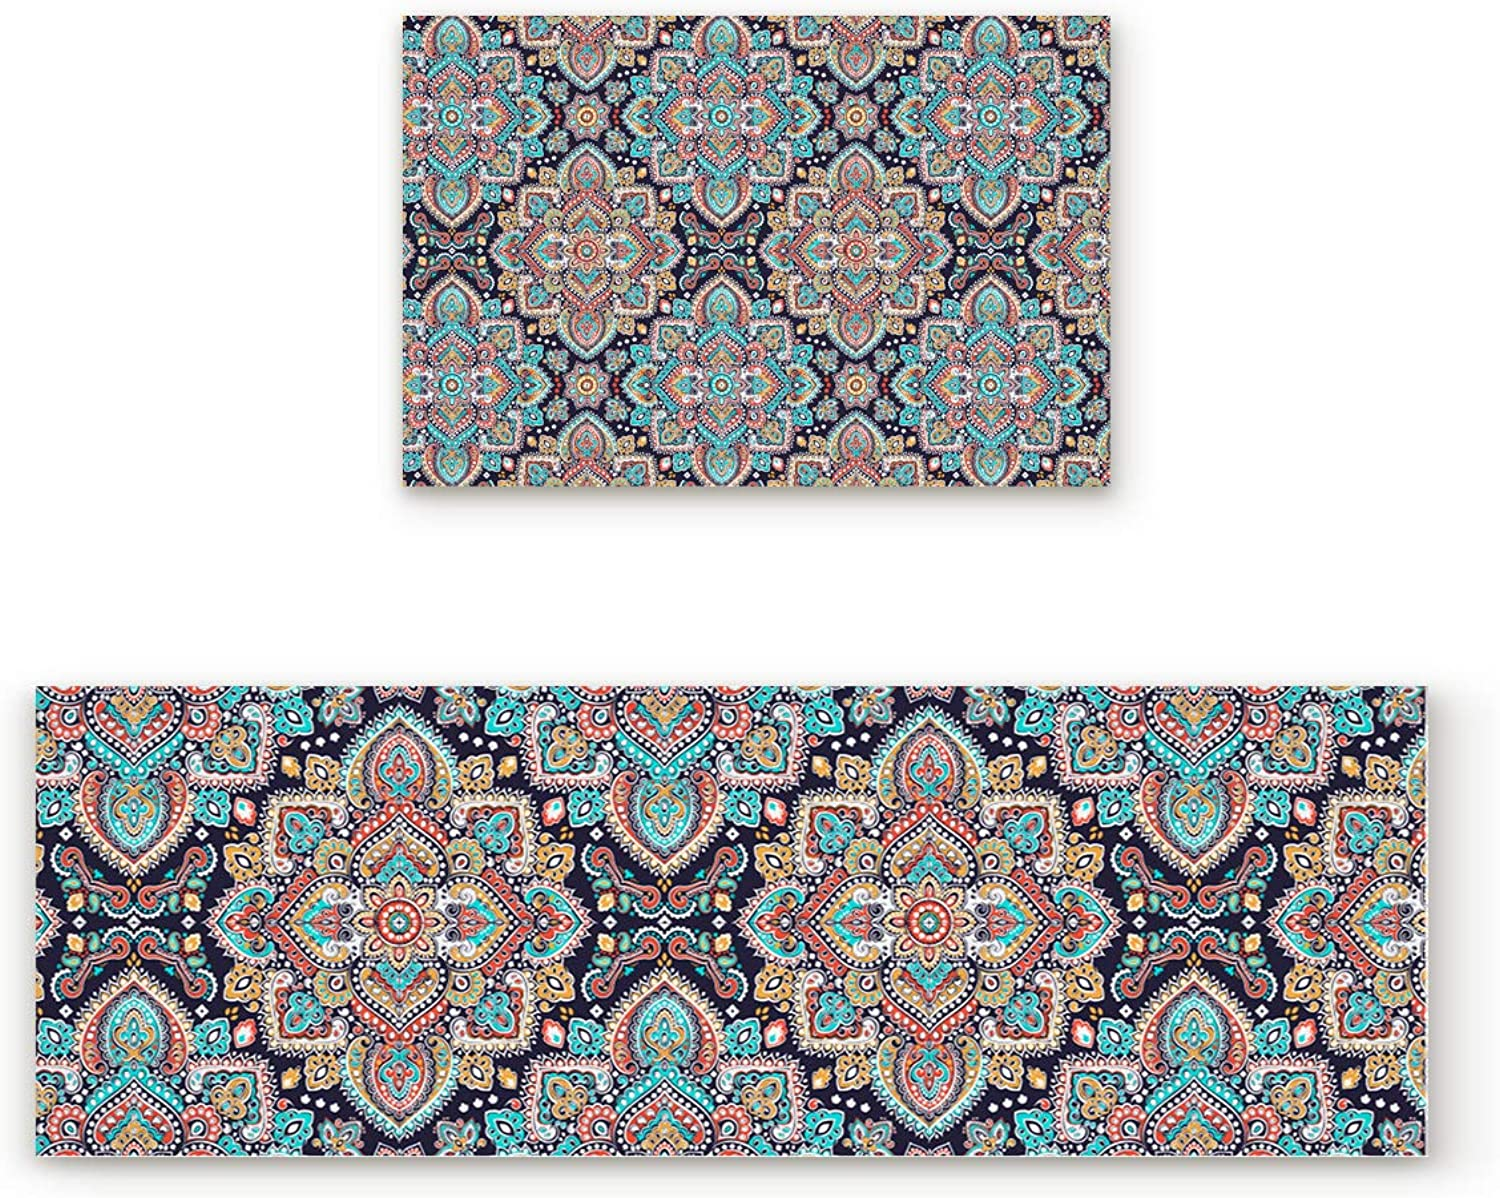 Aomike 2 Piece Non-Slip Kitchen Mat Rubber Backing Doormat Indian Mandala Floral Pattern Runner Rug Set Hallway Living Room Balcony Bathroom Carpet Sets (23.6  x 35.4 +23.6  x 70.9 )